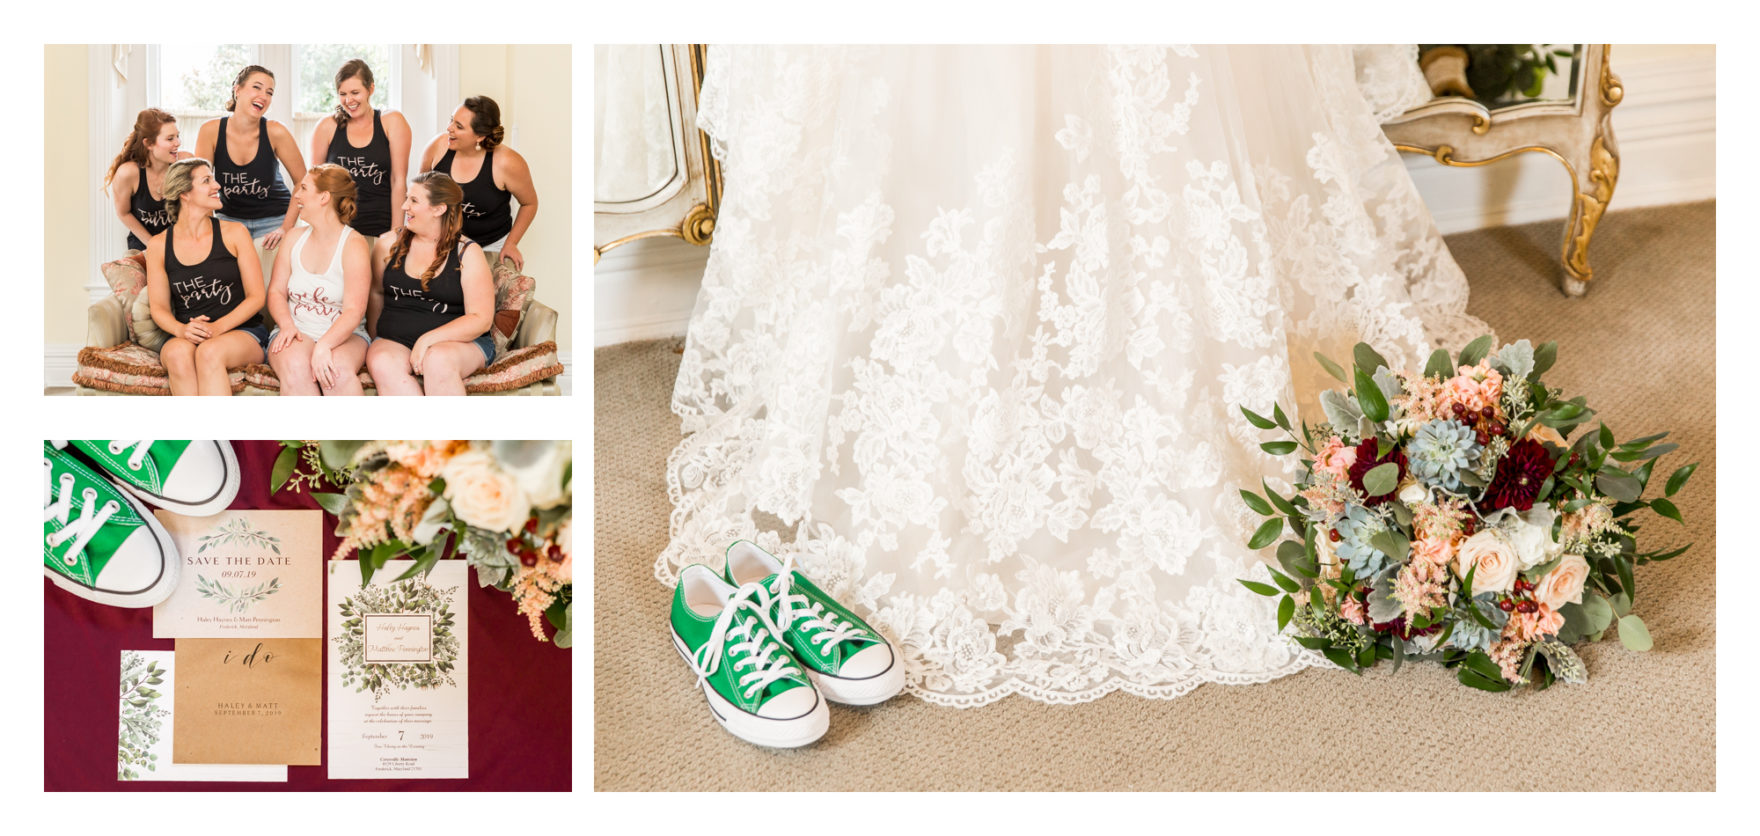 Frederick Wedding Photographer, Frederick Wedding, Ceresville Mansion Wedding, Fall Wedding, Burgundy Wedding, Outdoor Wedding, Military Wedding, Marine Wedding, Emerald Ring, Emerald Engagement Ring, Emerald Wedding Ring Green Wedding Shoes, Green Converse